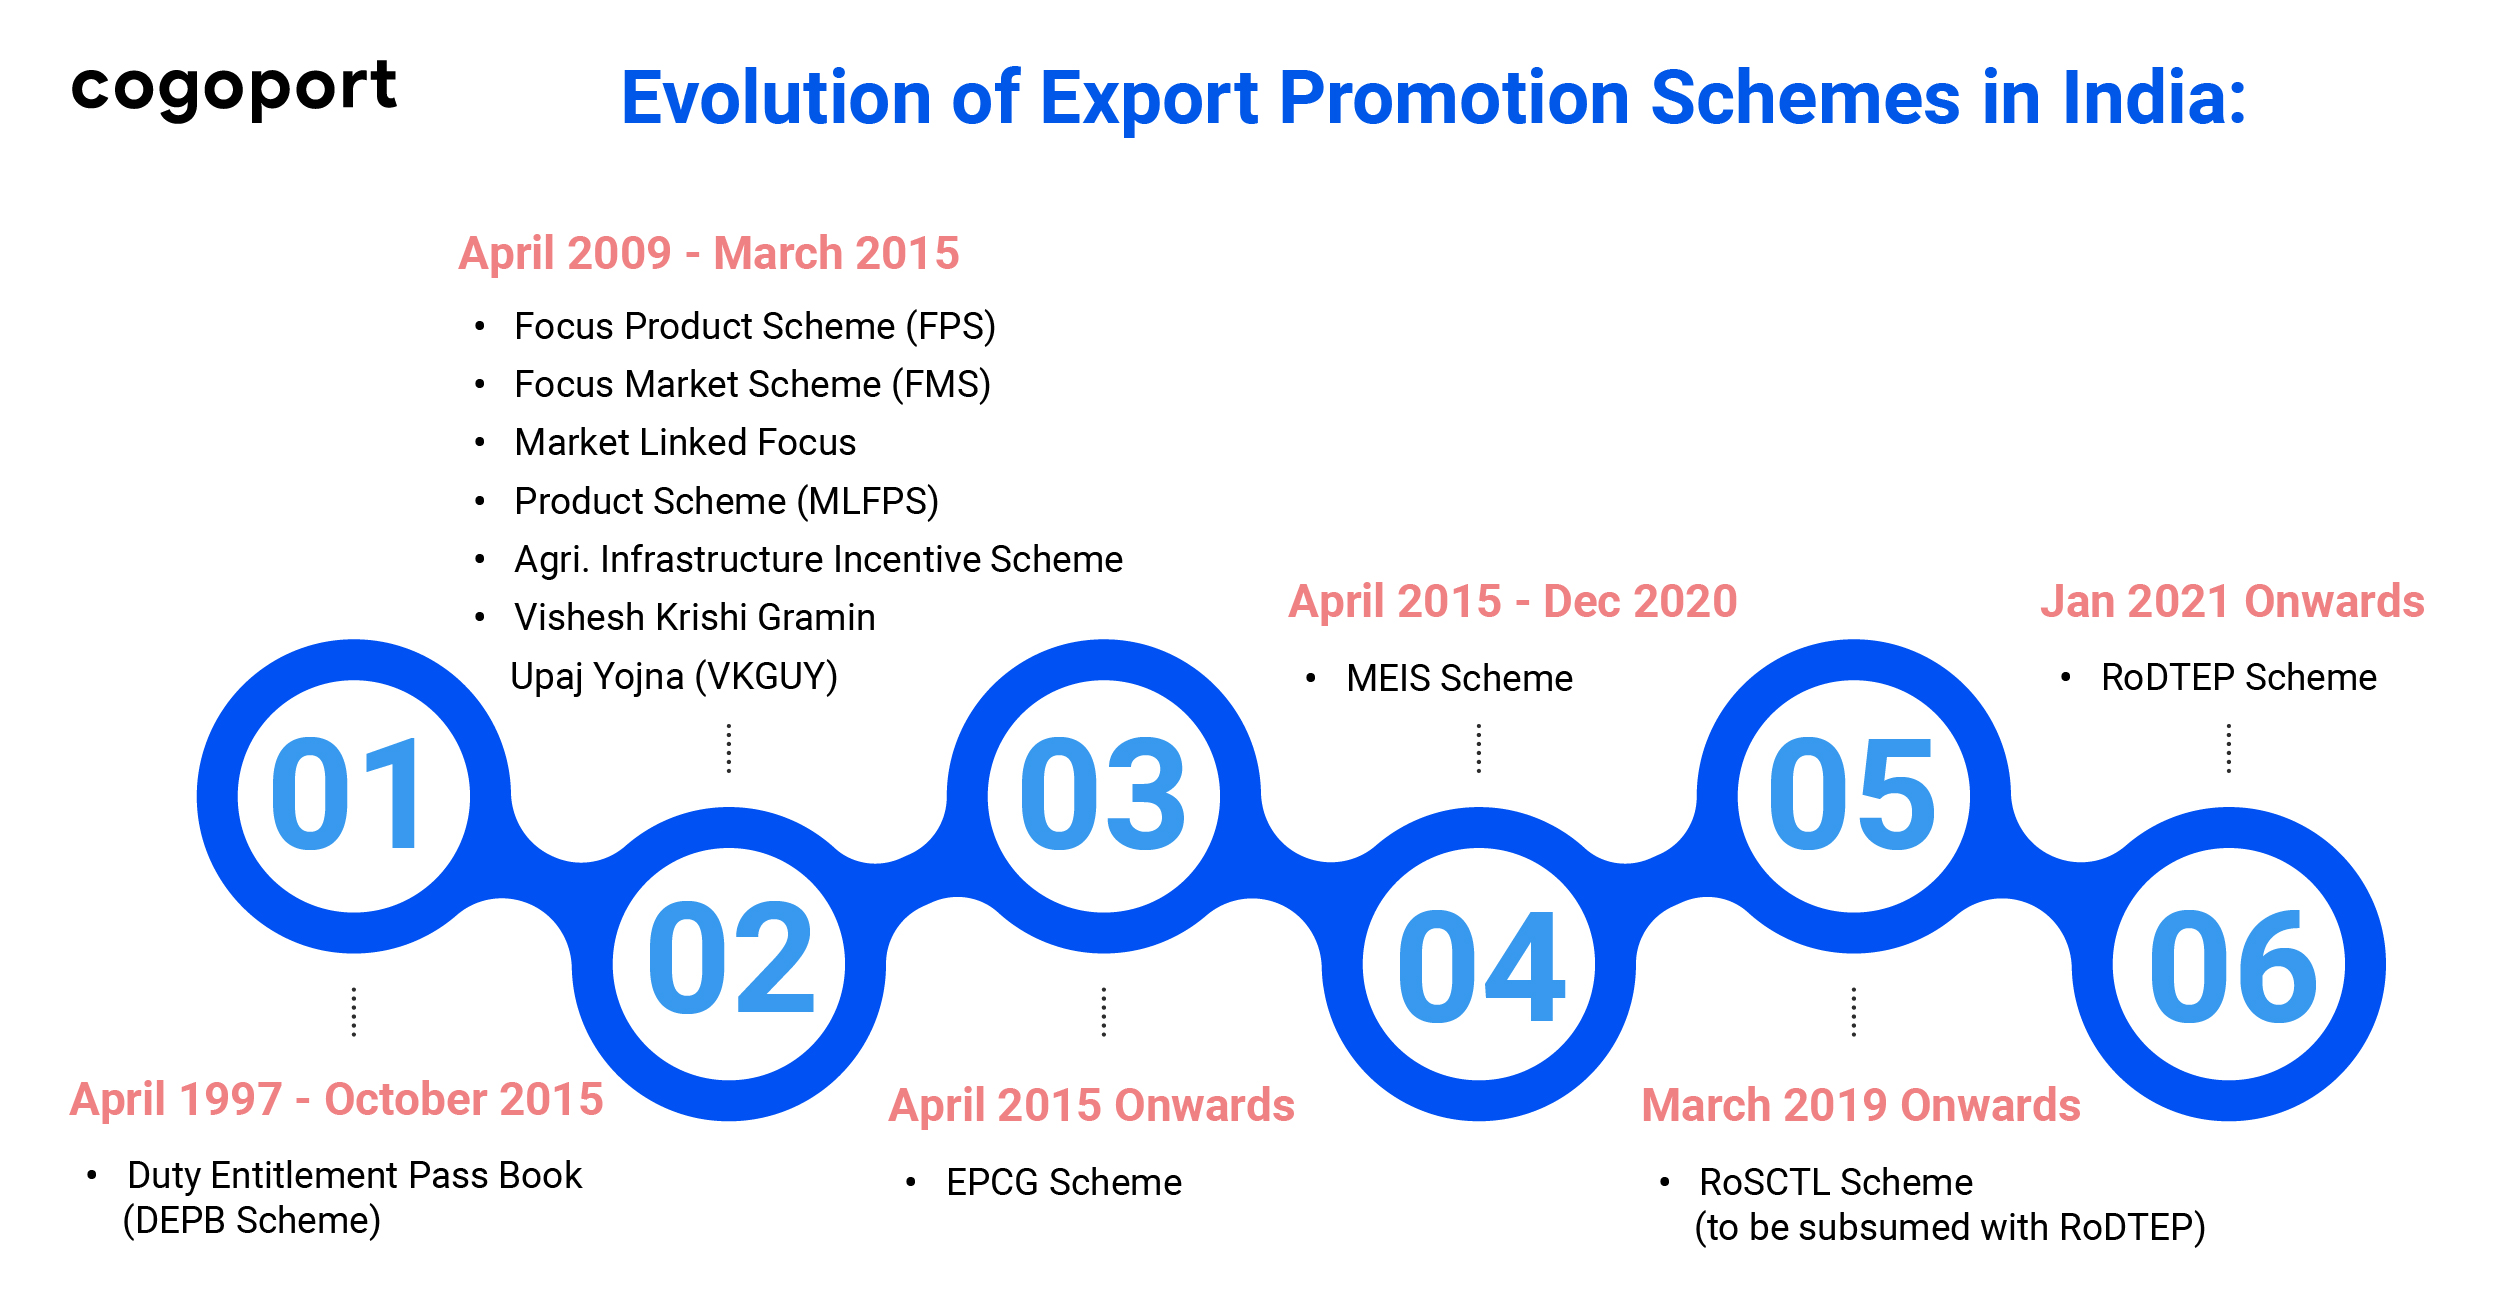 Evolution of Export Promotion Schemes in India